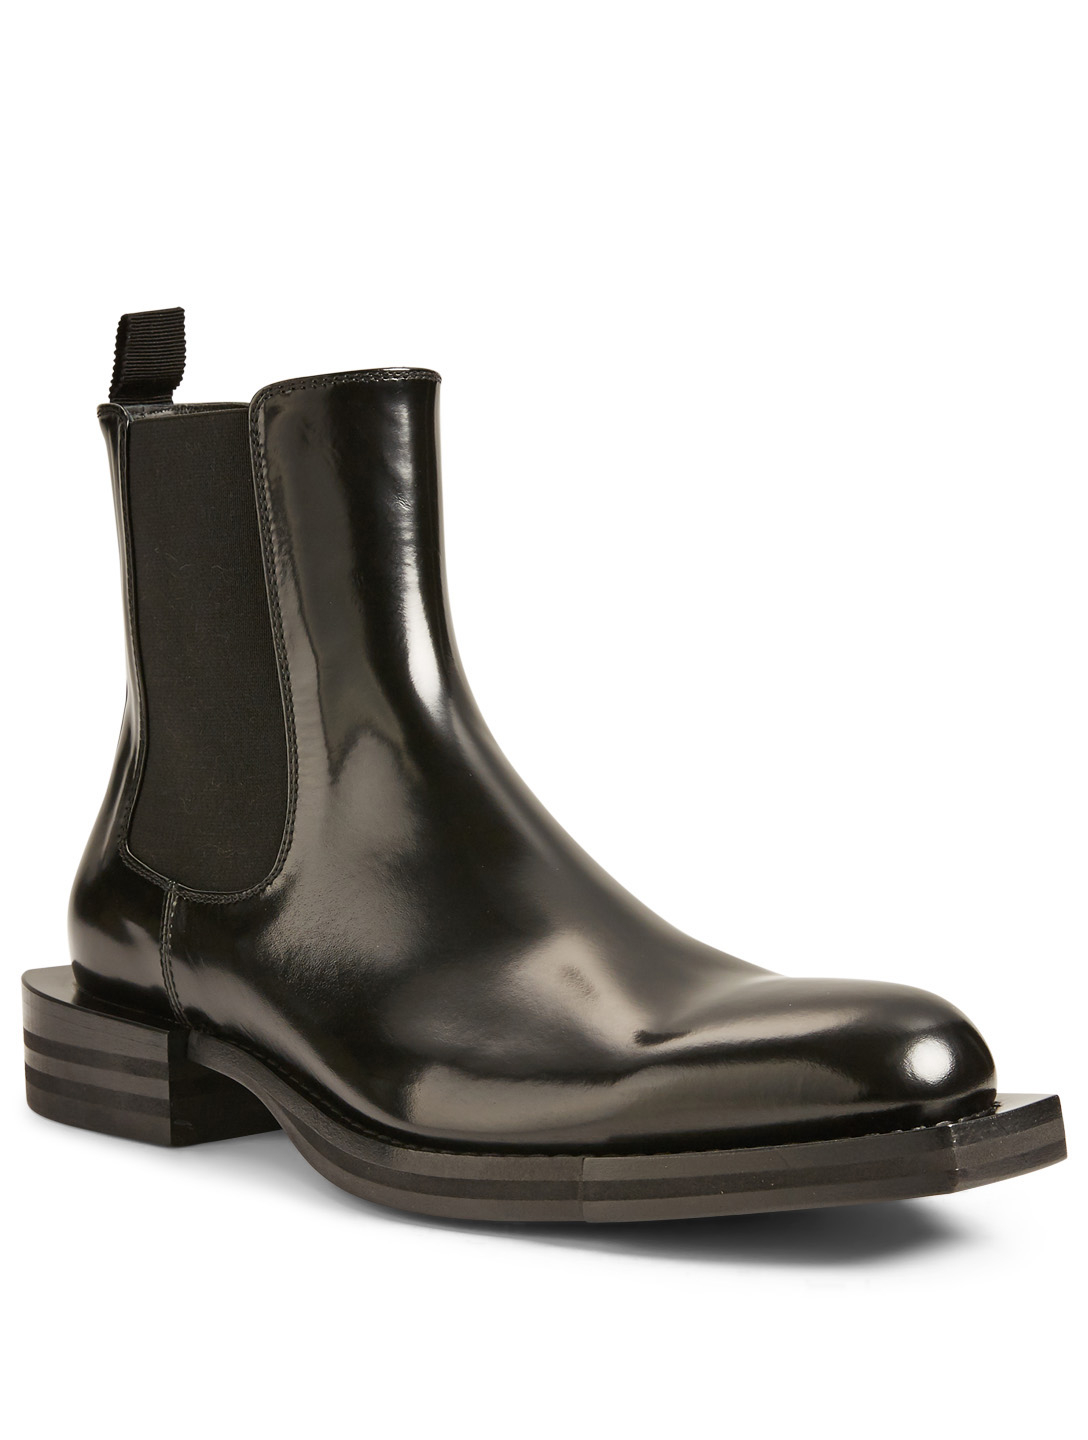 ALEXANDER MCQUEEN Leather Chelsea Boots Men's Black